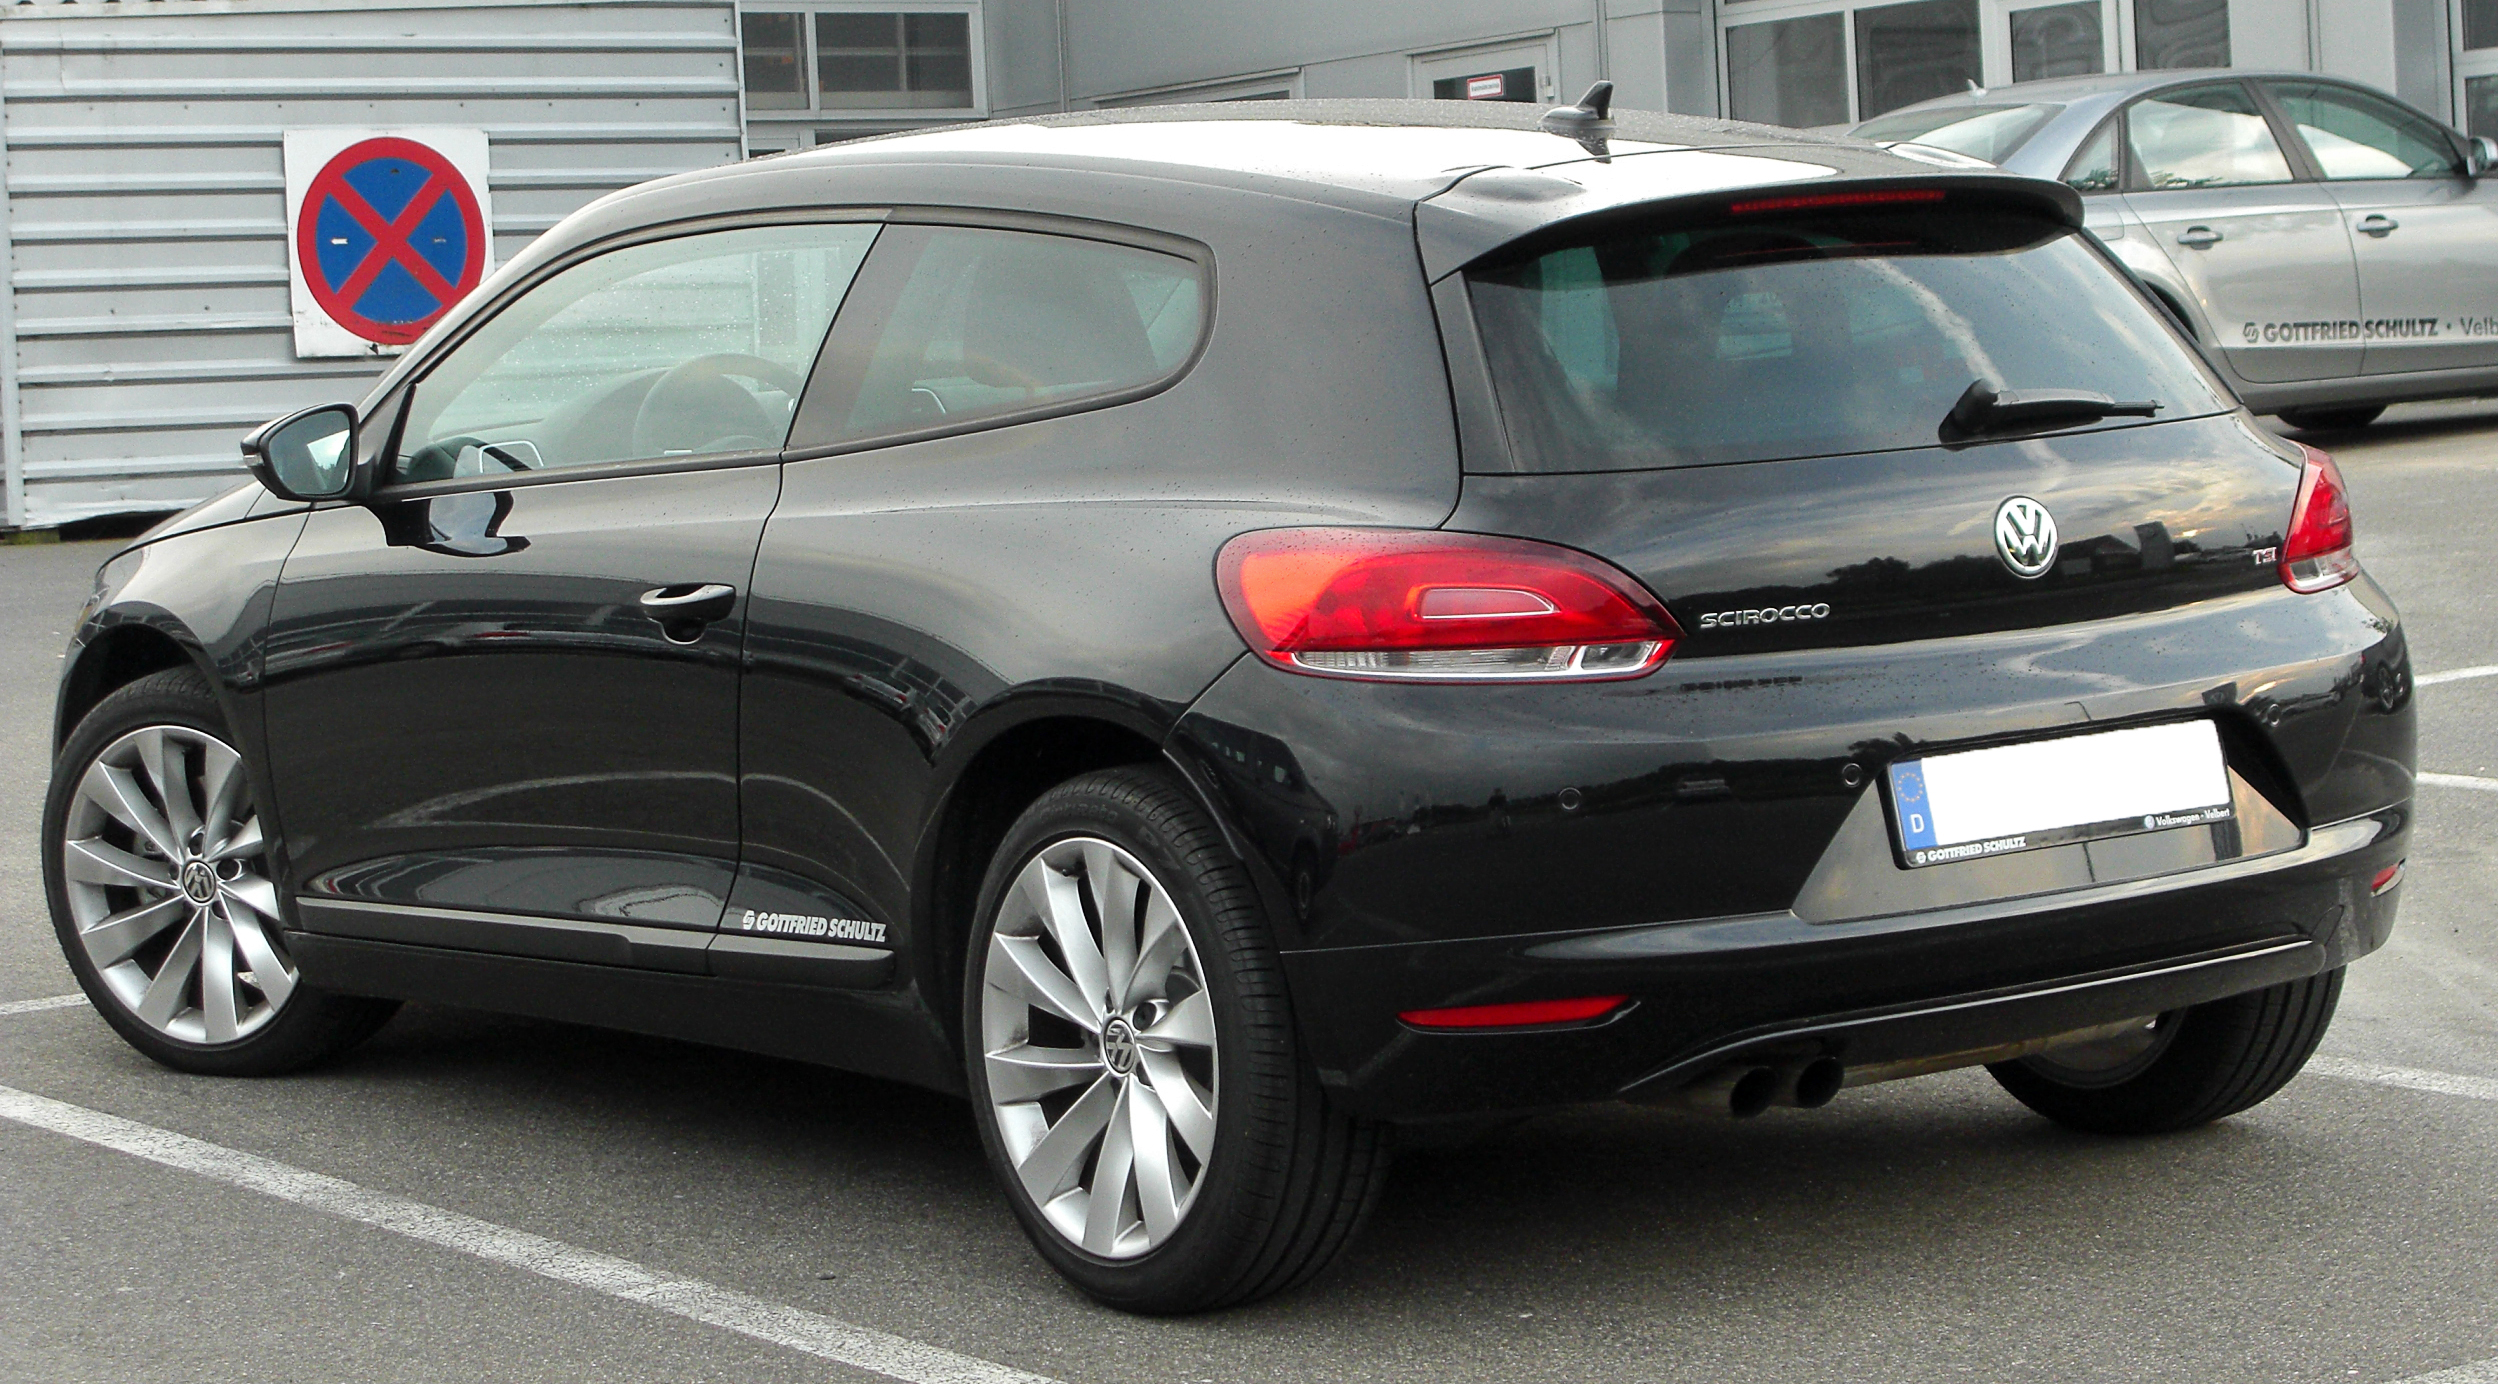 file vw scirocco iii 1 4 tsi rear wikimedia commons. Black Bedroom Furniture Sets. Home Design Ideas